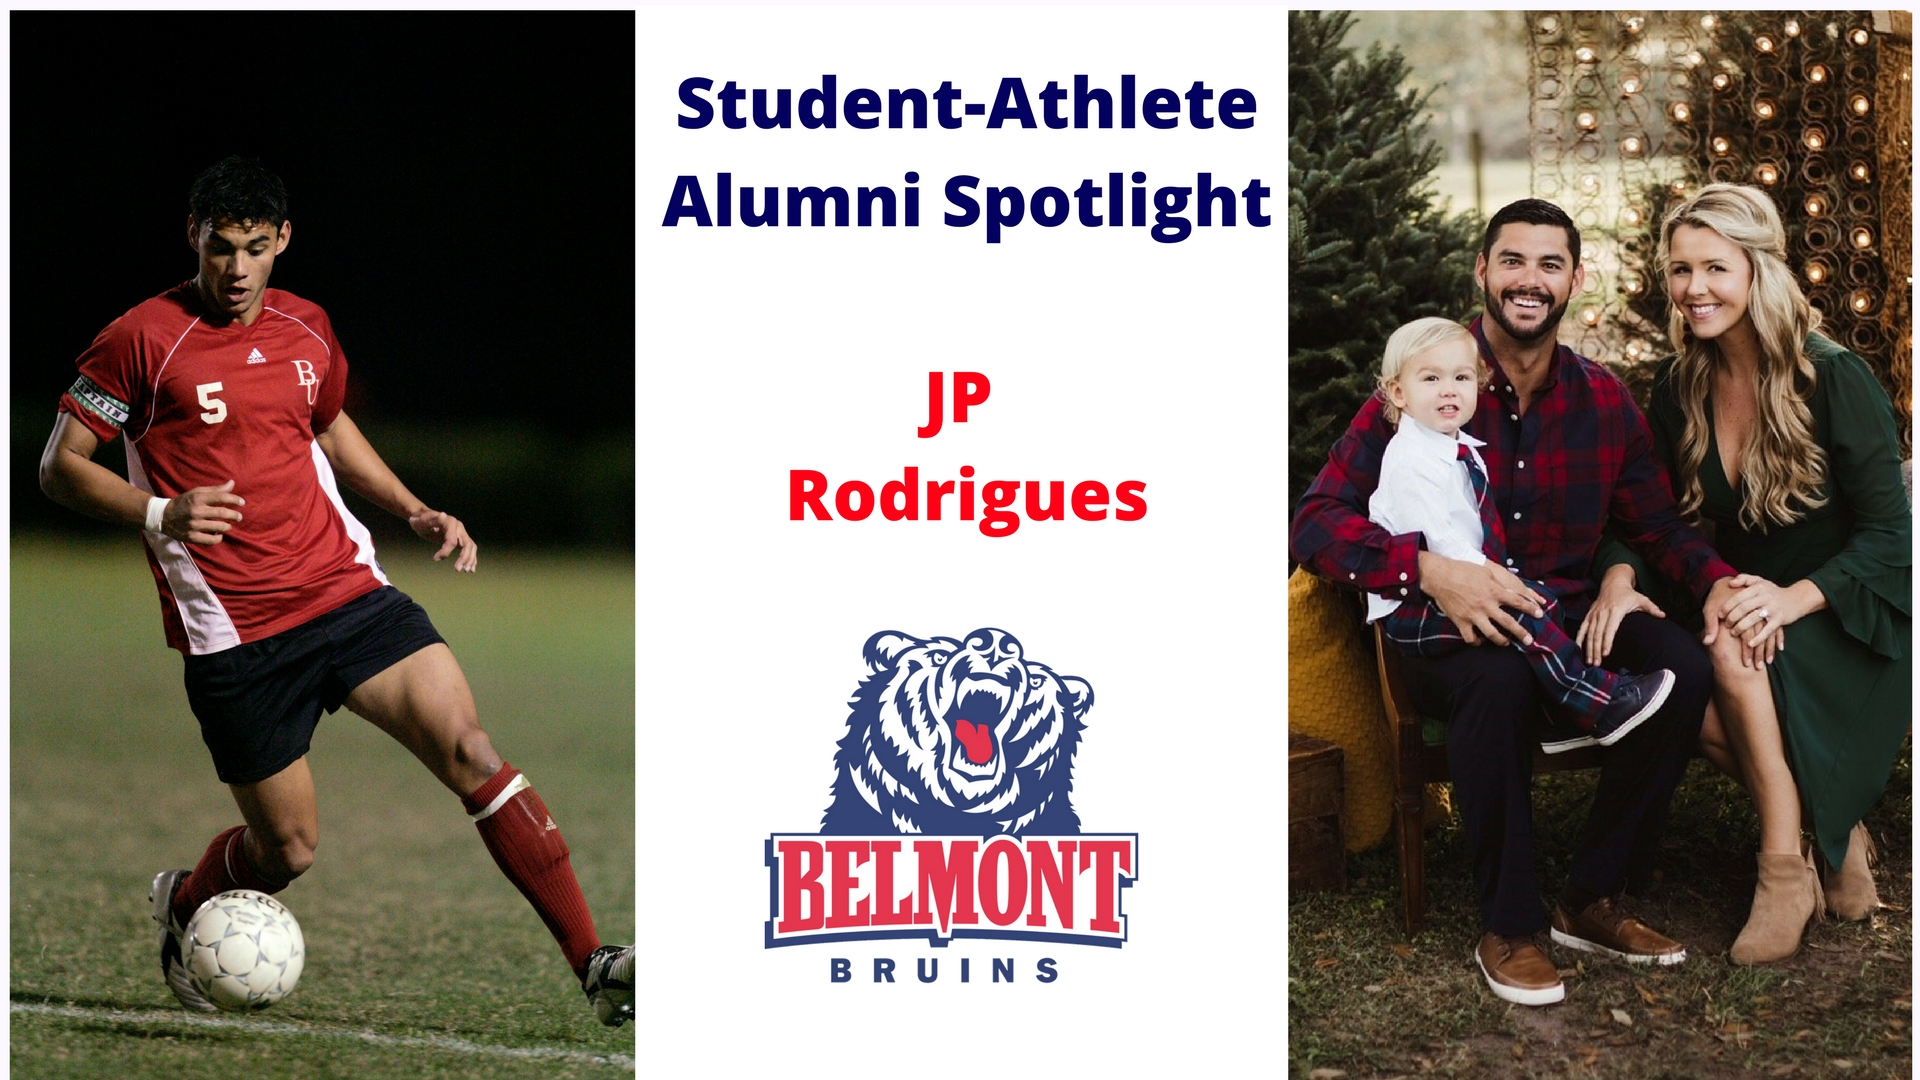 Student-Athlete Alumni Spotlight -- JP Rodrigues